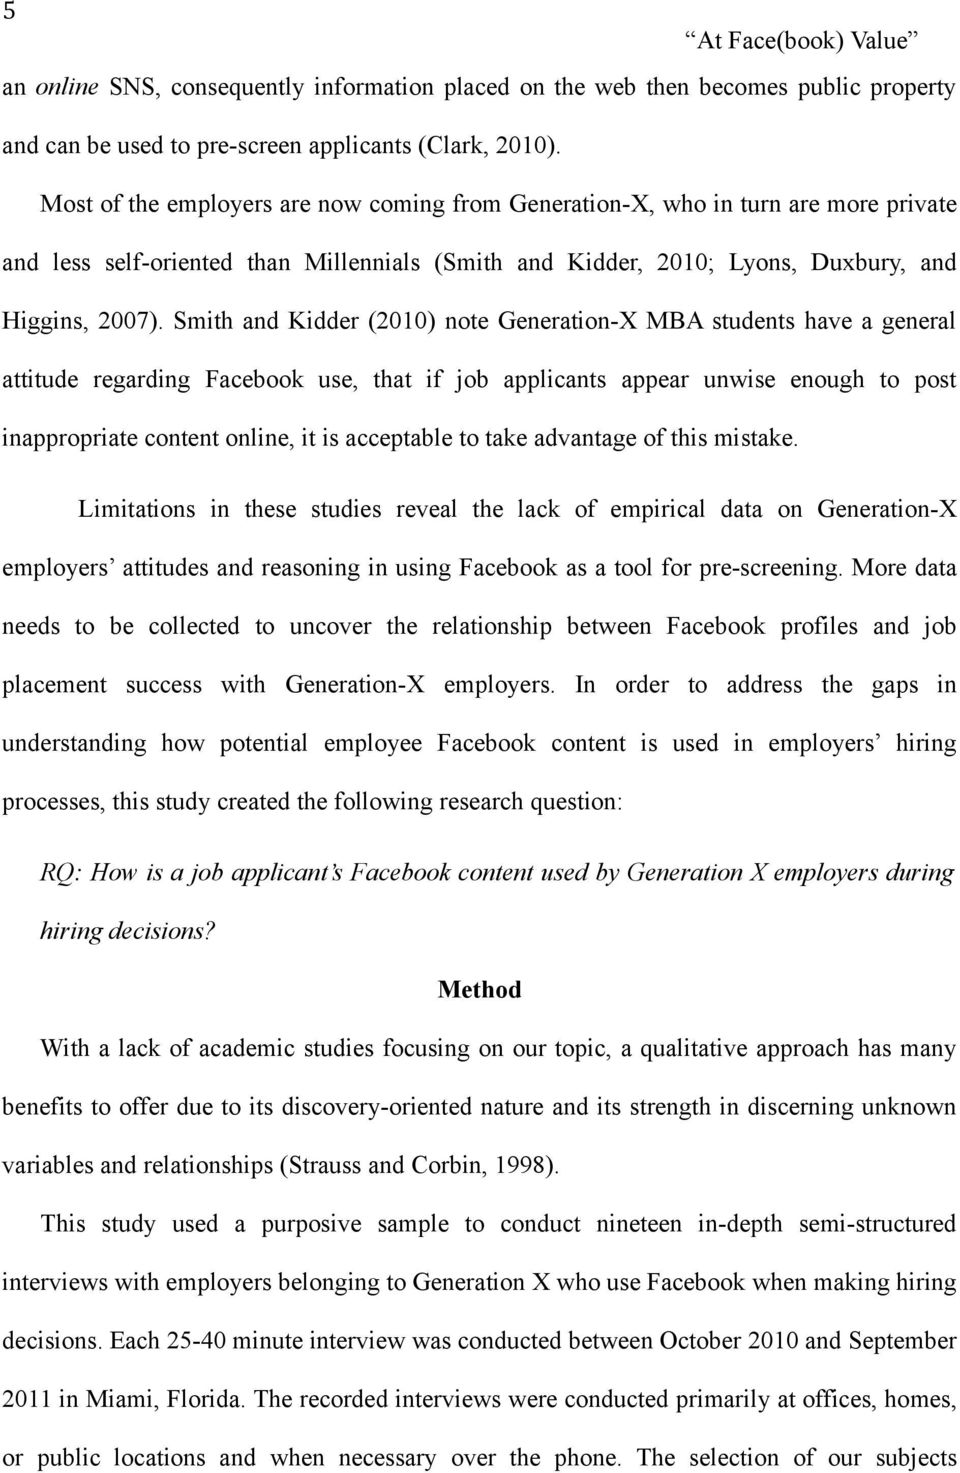 Smith and Kidder (2010) note Generation-X MBA students have a general attitude regarding Facebook use, that if job applicants appear unwise enough to post inappropriate content online, it is